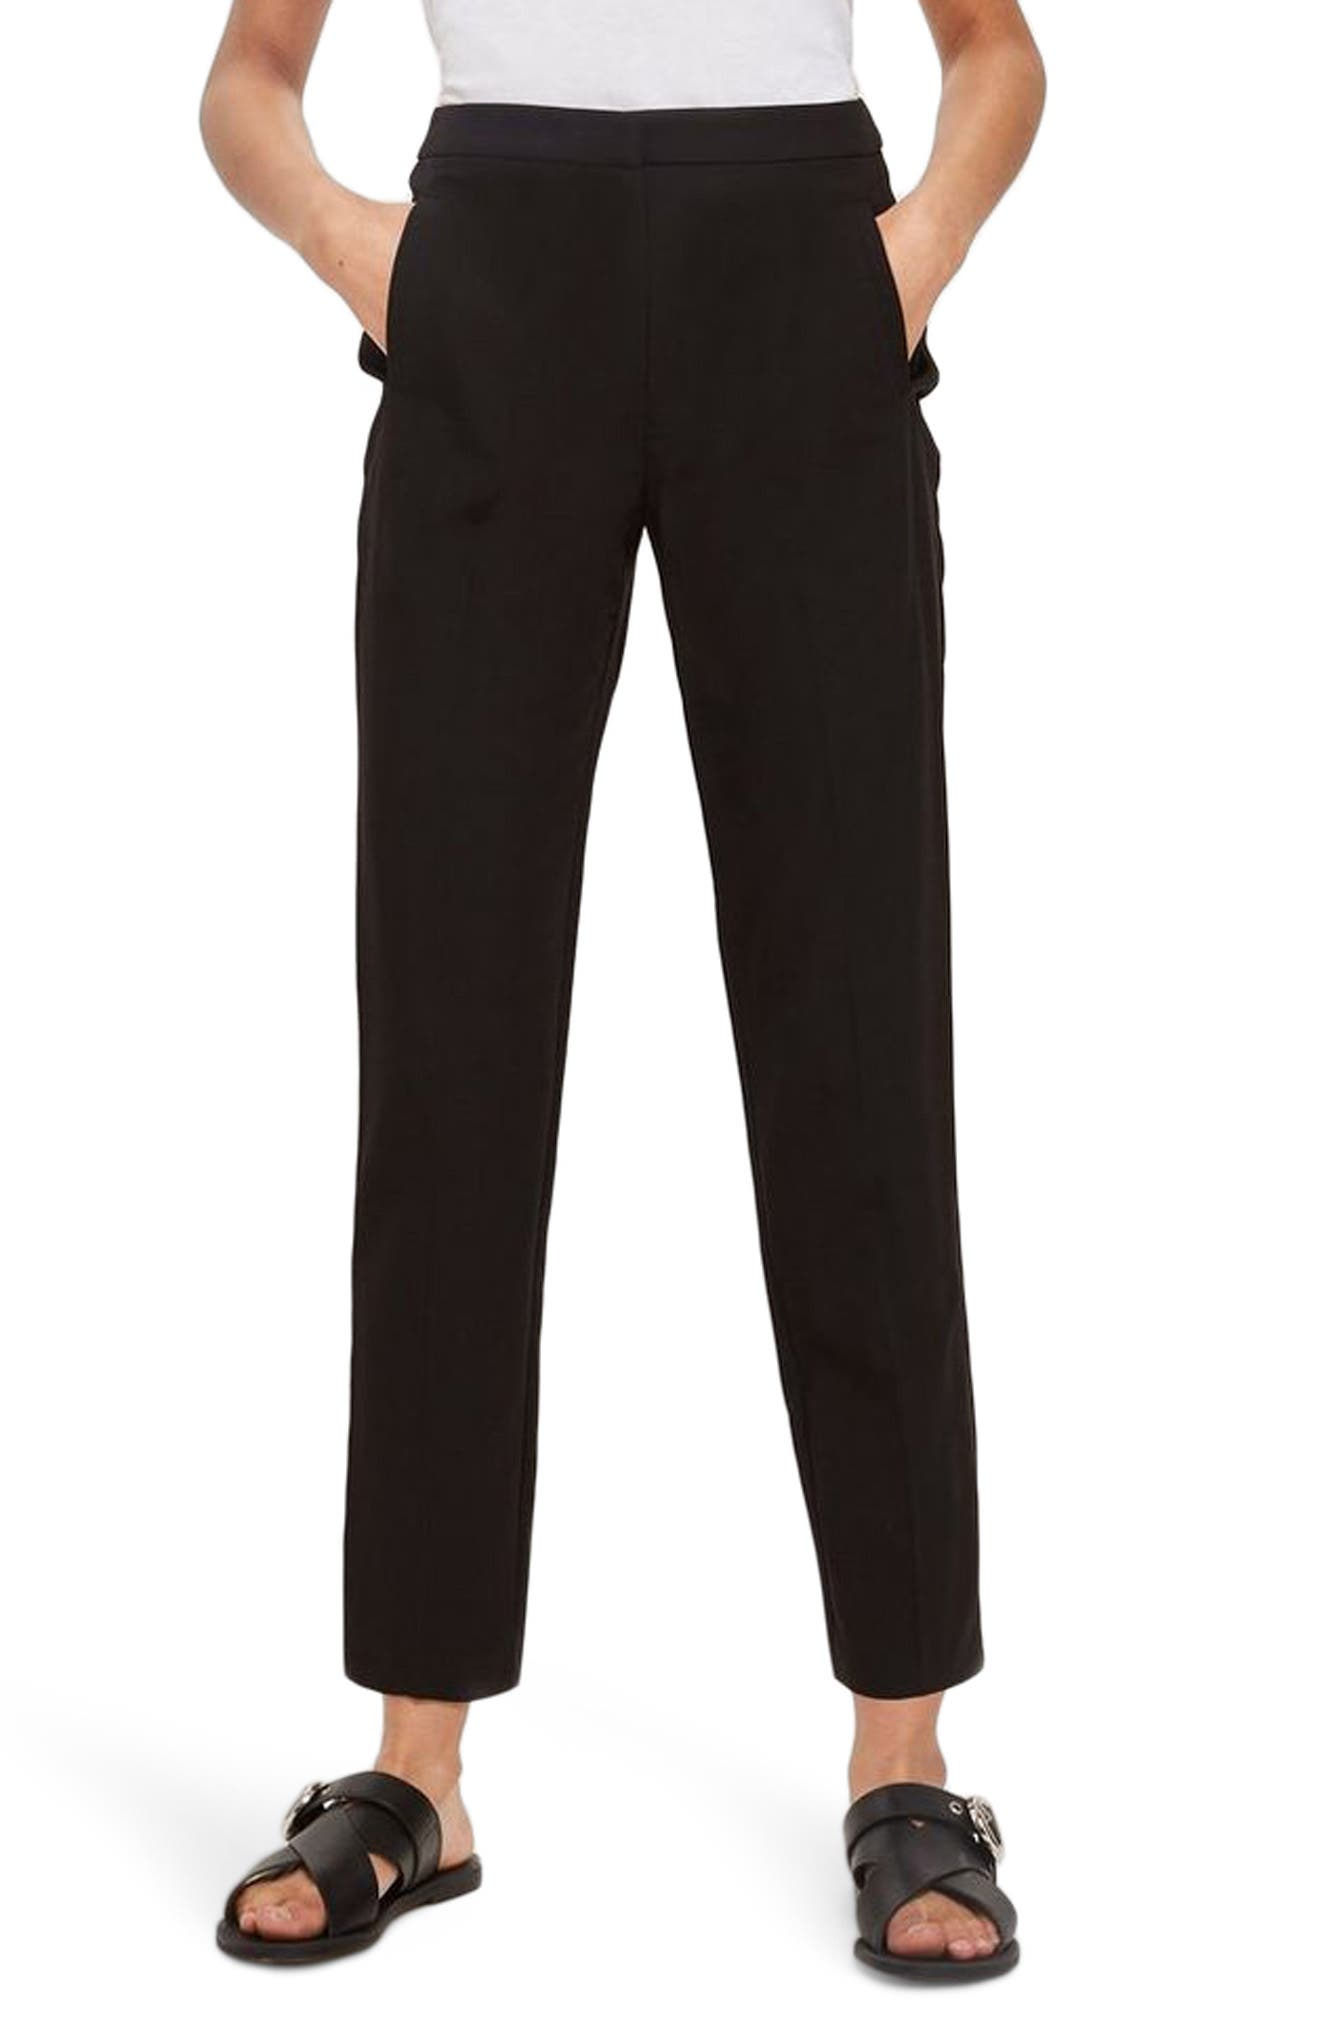 Main Image - Topshop High Waist Cigarette Trousers